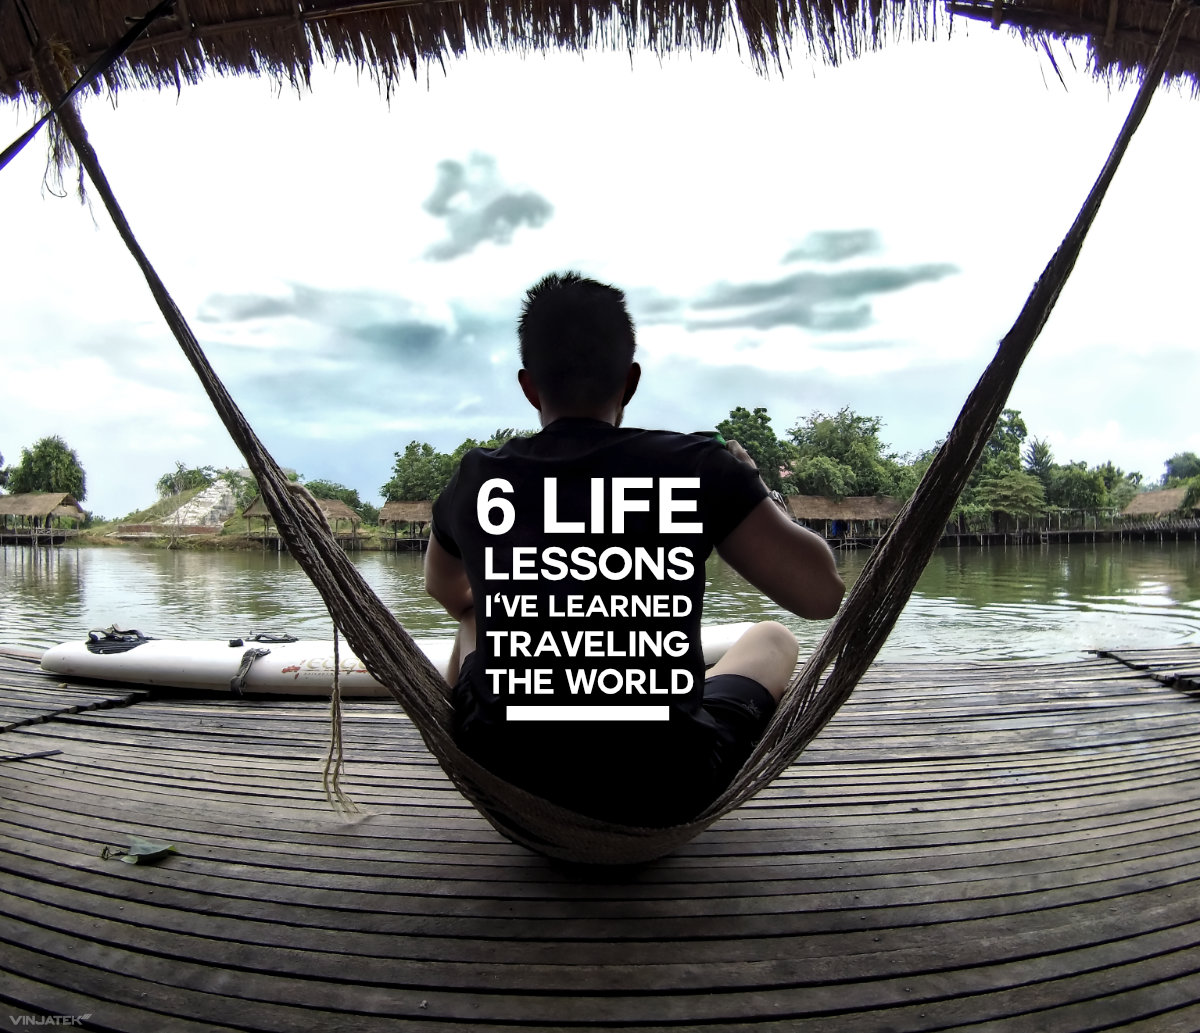 6 Life Lessons I've Learned Traveling The World /// Vinjatek